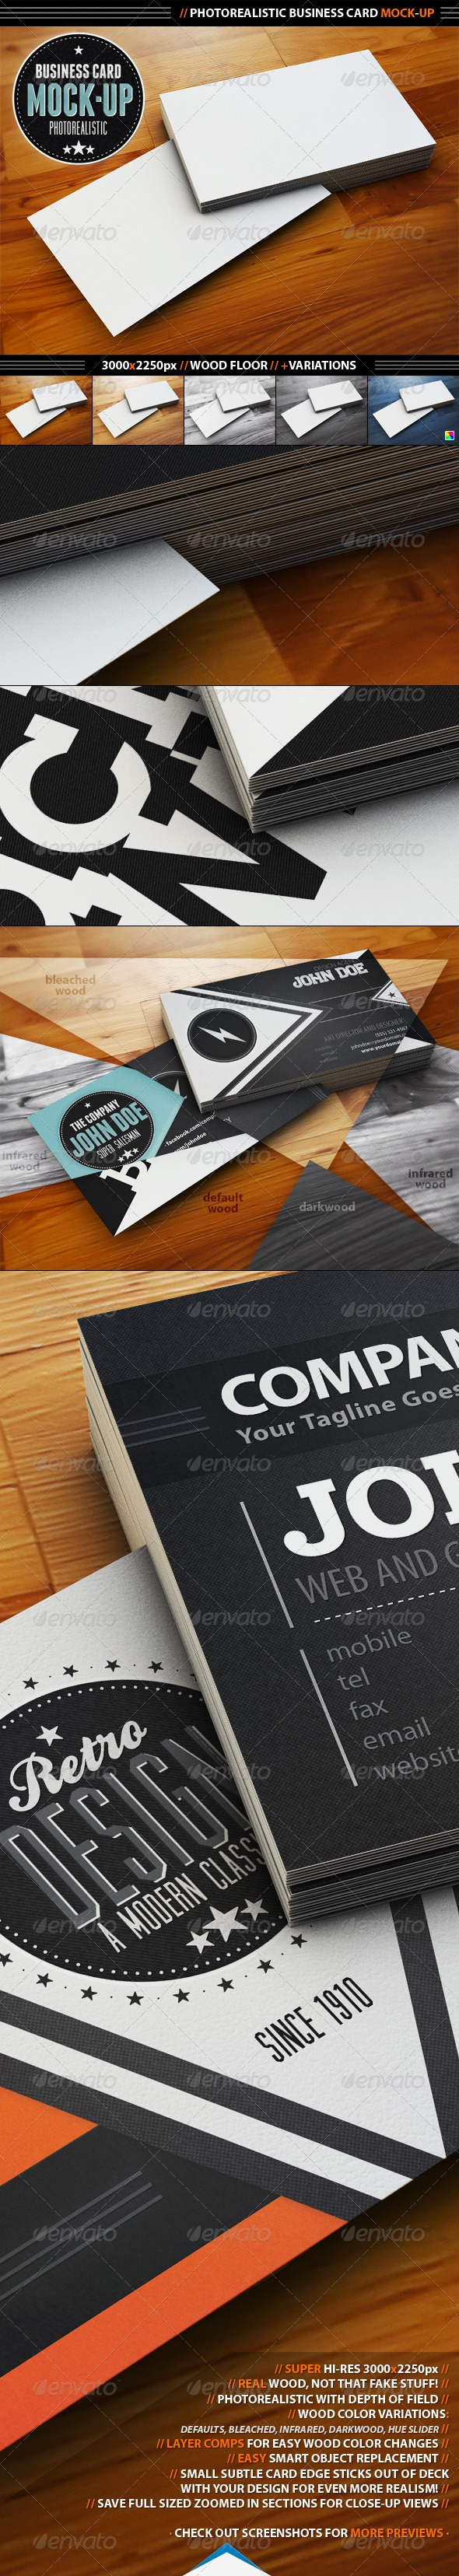 The 25+ best Business card mock up ideas on Pinterest | Free ...